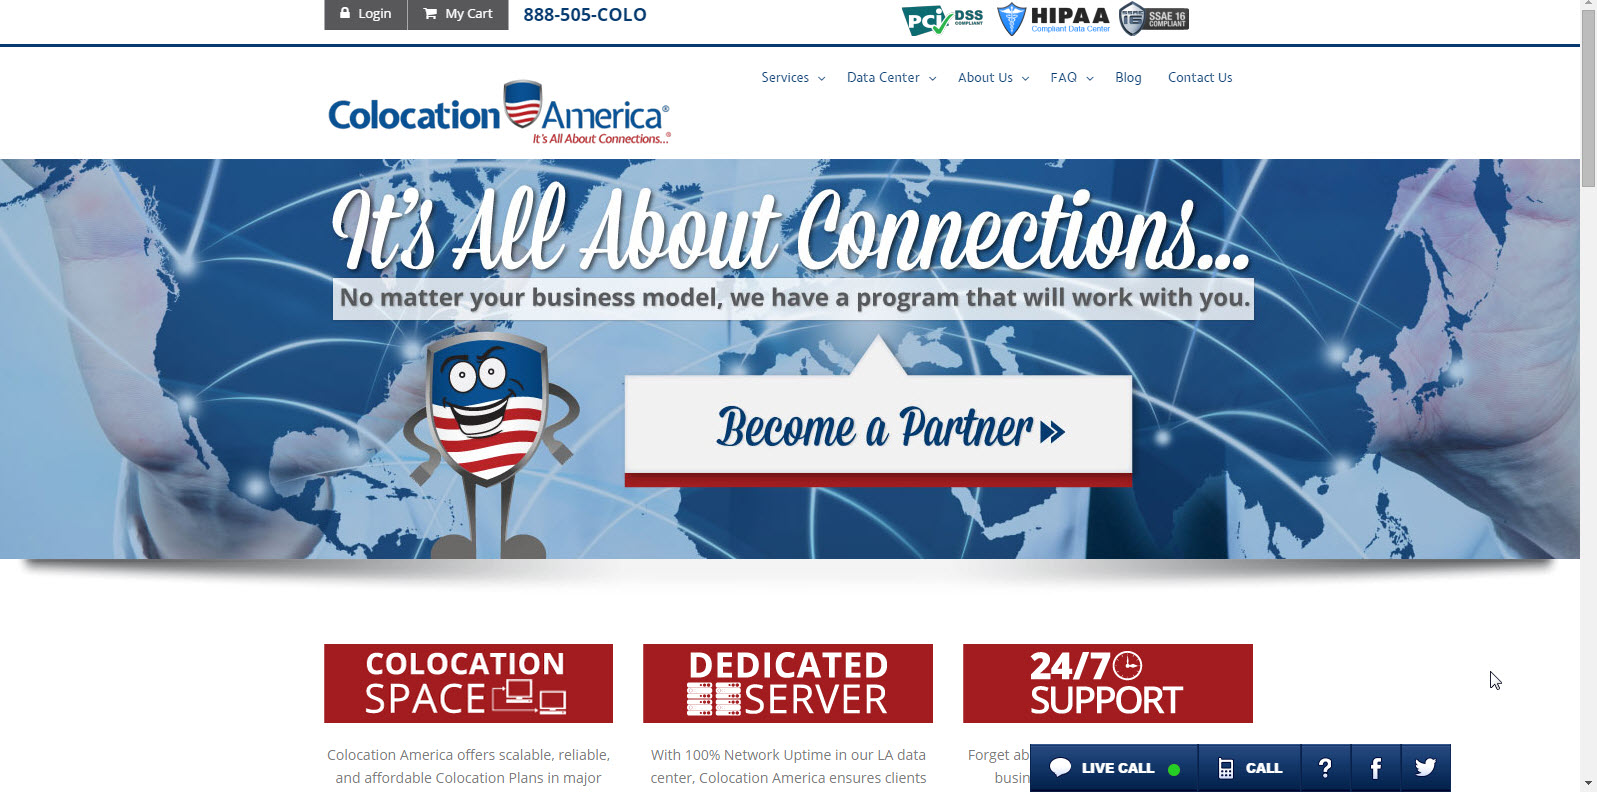 Colocation America Demo - Home Page